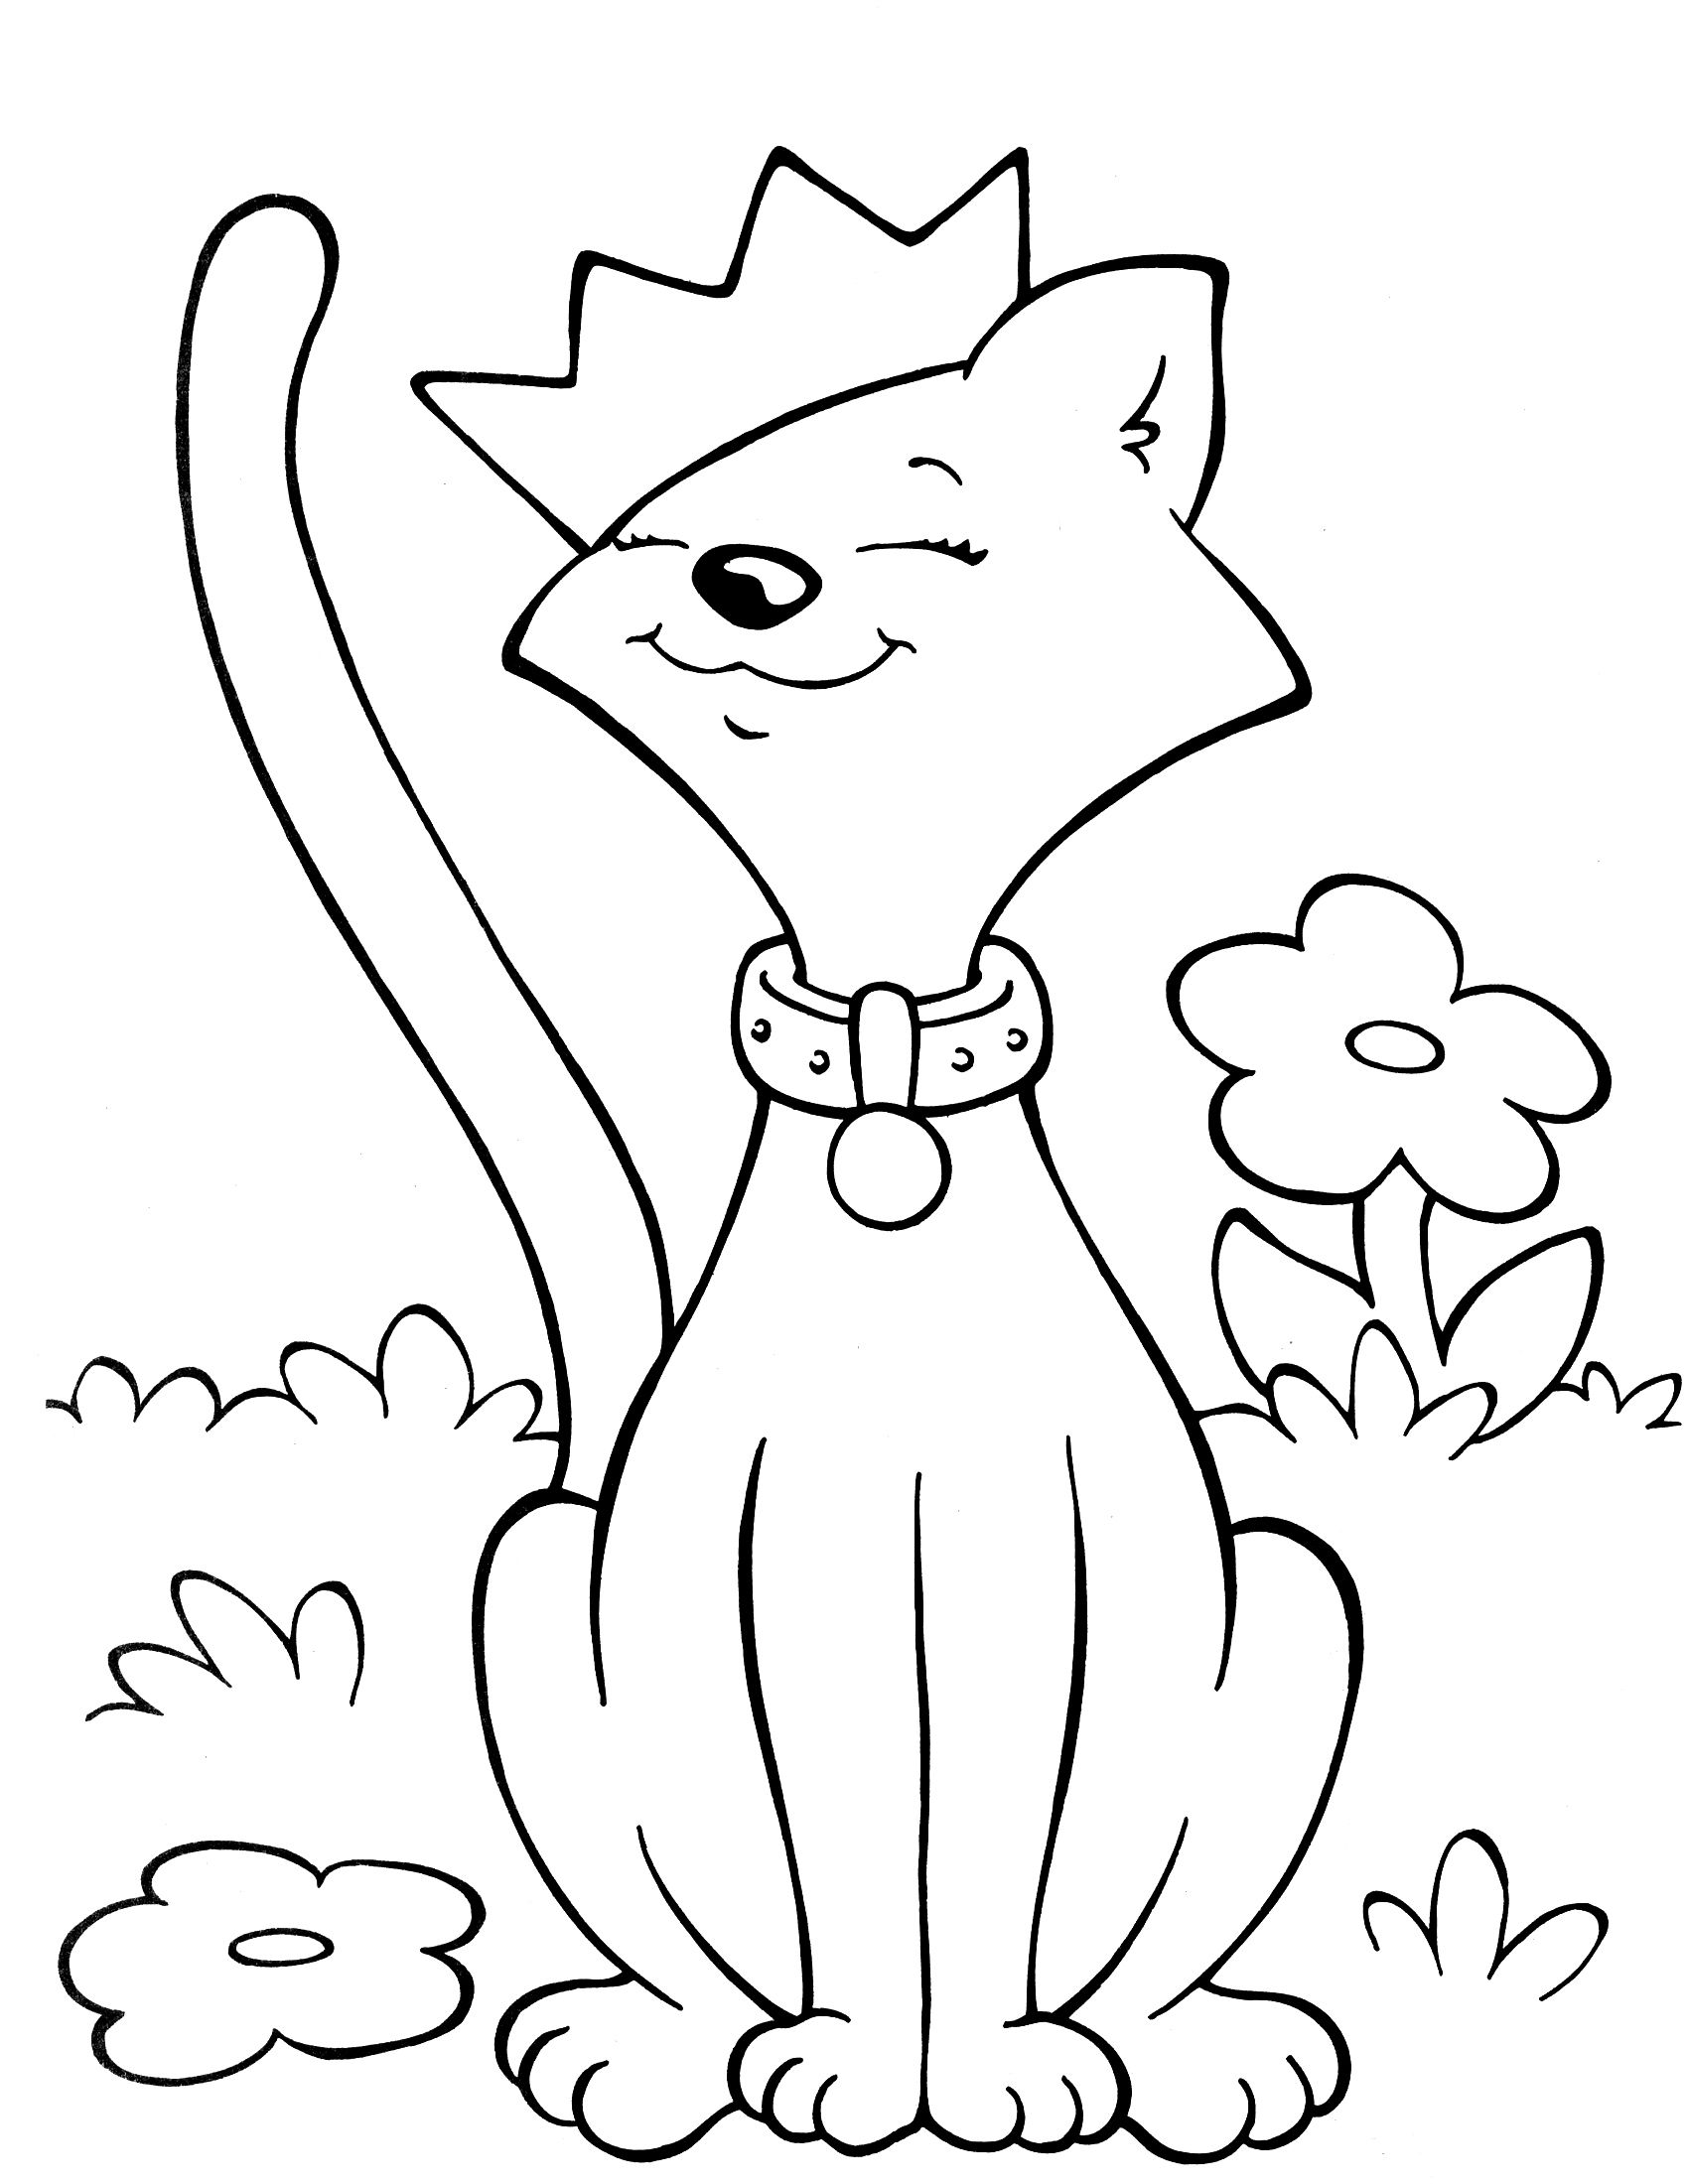 Crayola Coloring Pages Crayola Coloring Pages Coloringpages Coloring Coloringbook Col Ariel Coloring Pages Halloween Coloring Pages Cartoon Coloring Pages